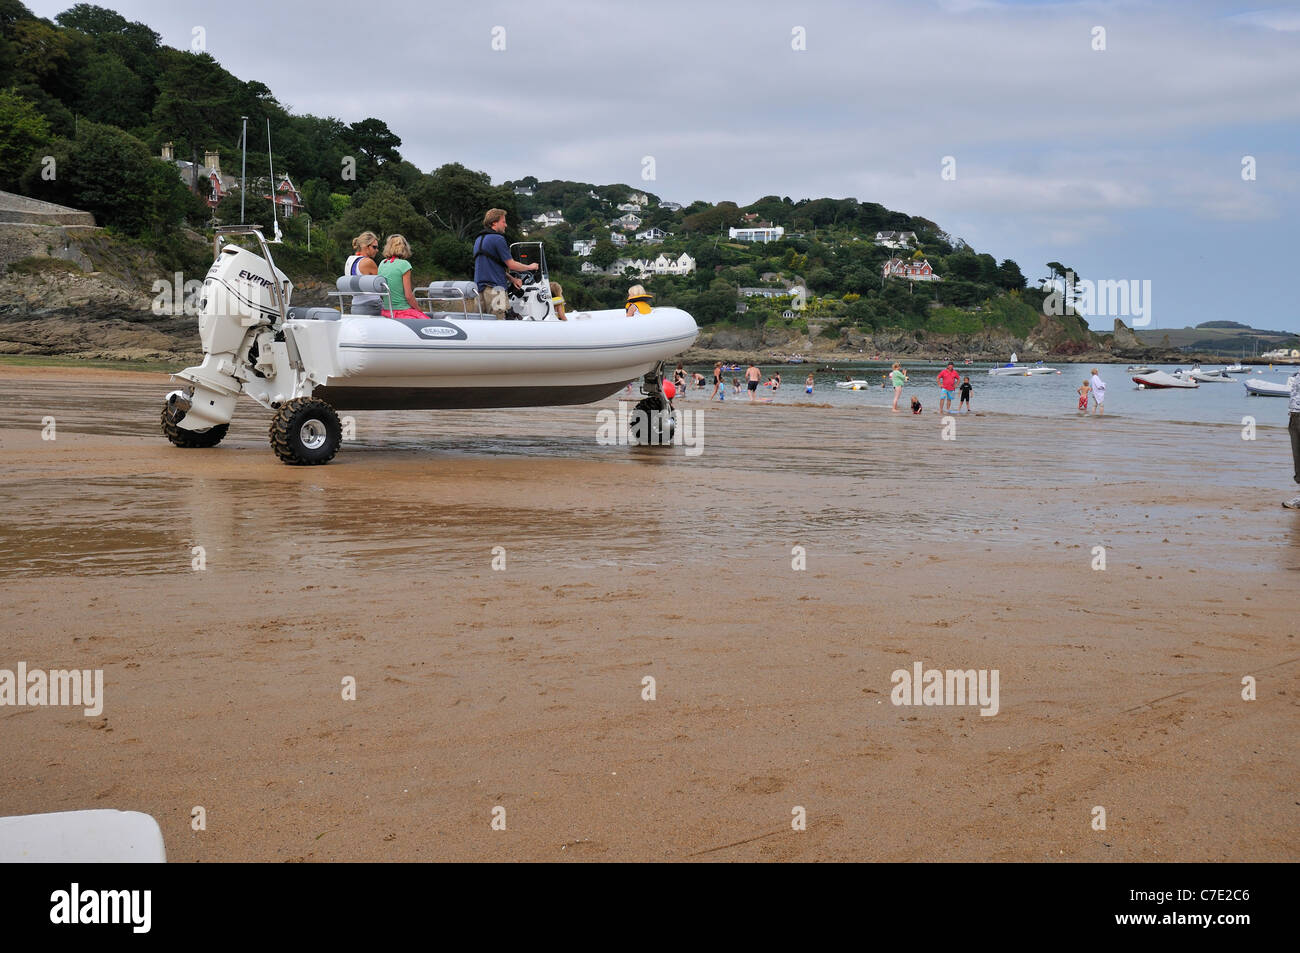 Sea legs amphibious craft  (rib) drives on South Sands Salcombe Devon to the waters edge . - Stock Image